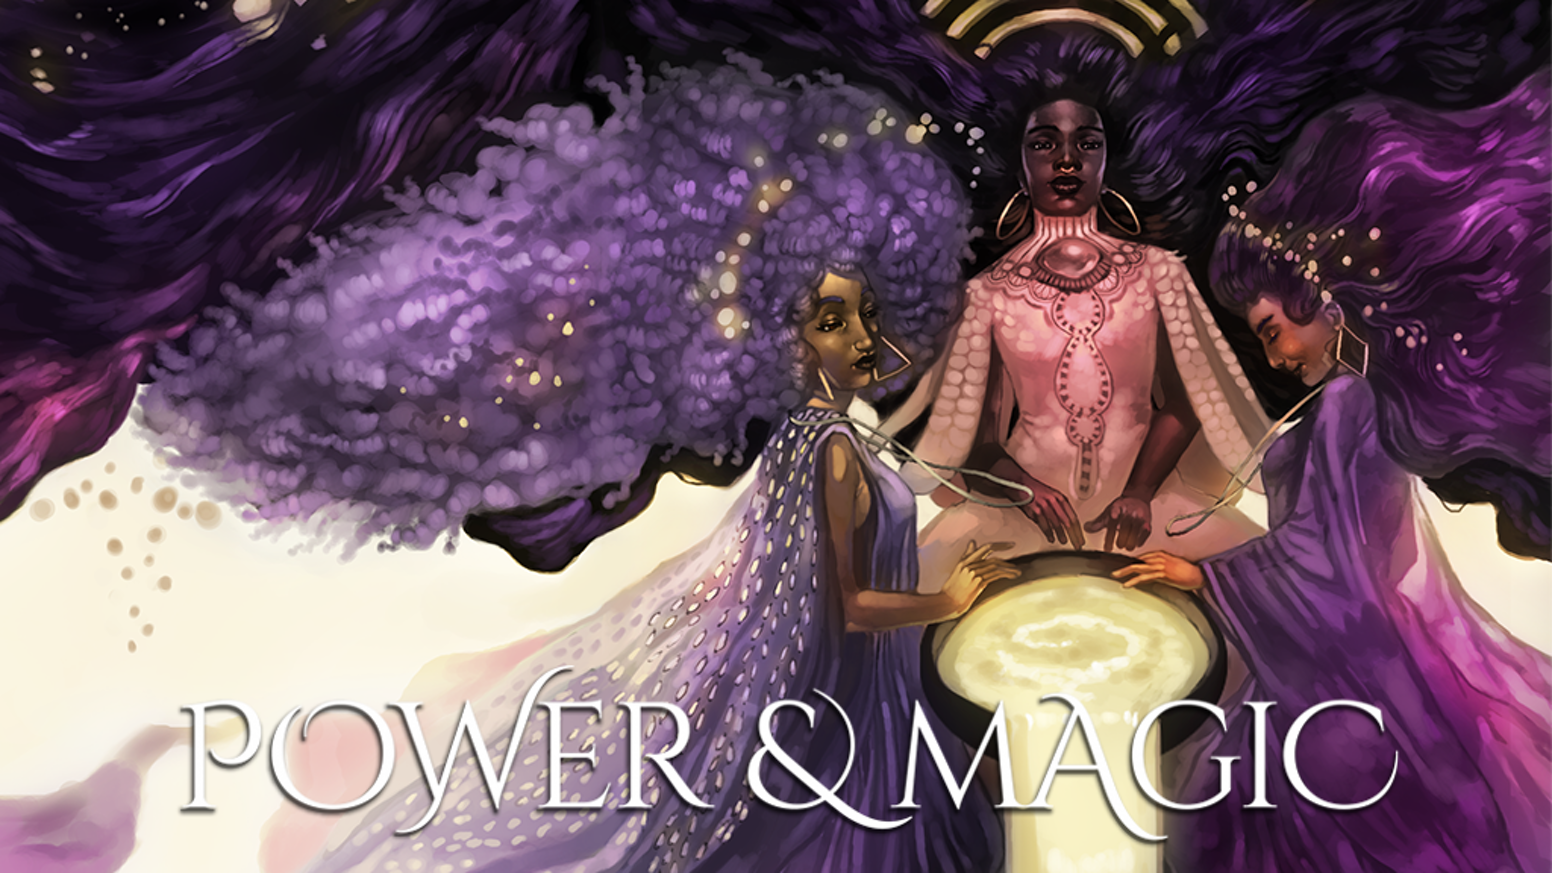 Comics about queer witches of color created by 17 women, demigirls, and bigender people of color!